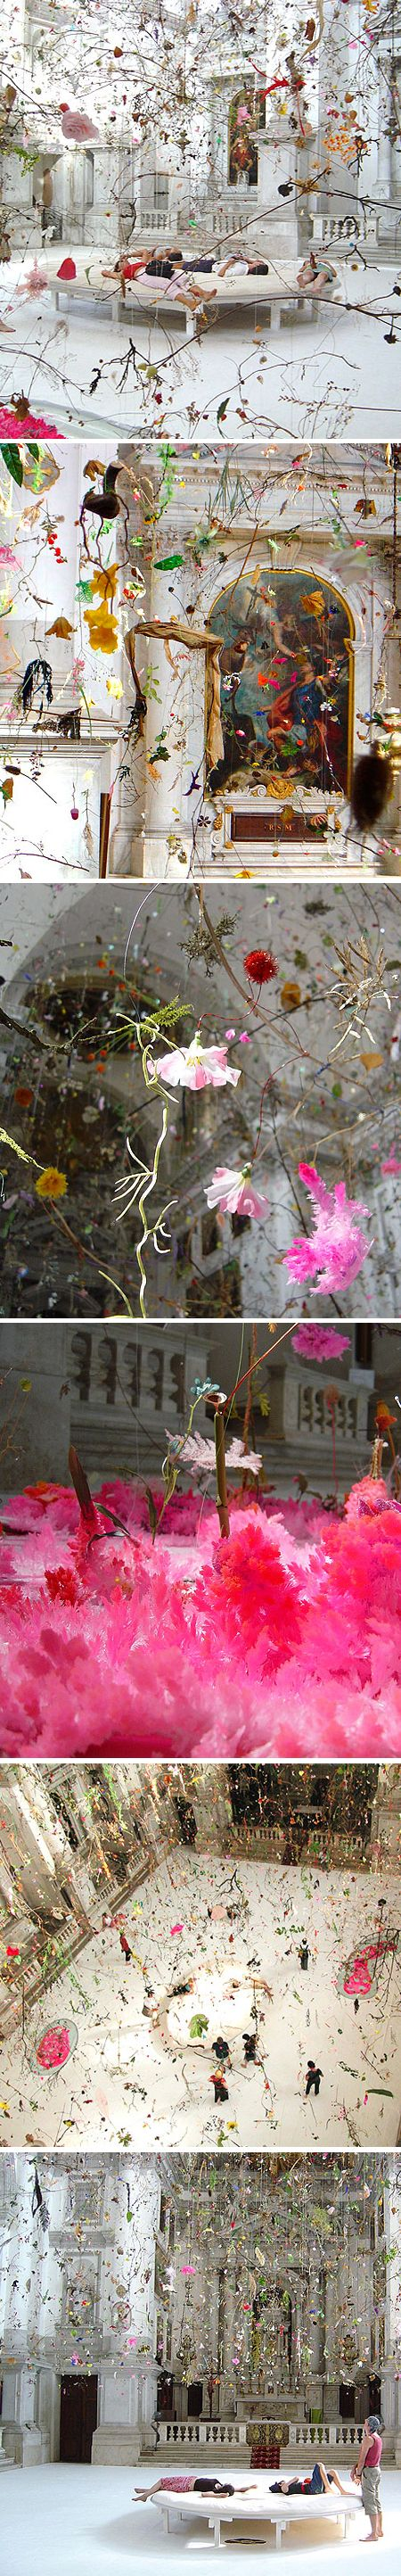 Falling Garden: This breathtaking installation was created for the 50th Biennial of Venice in 2003.